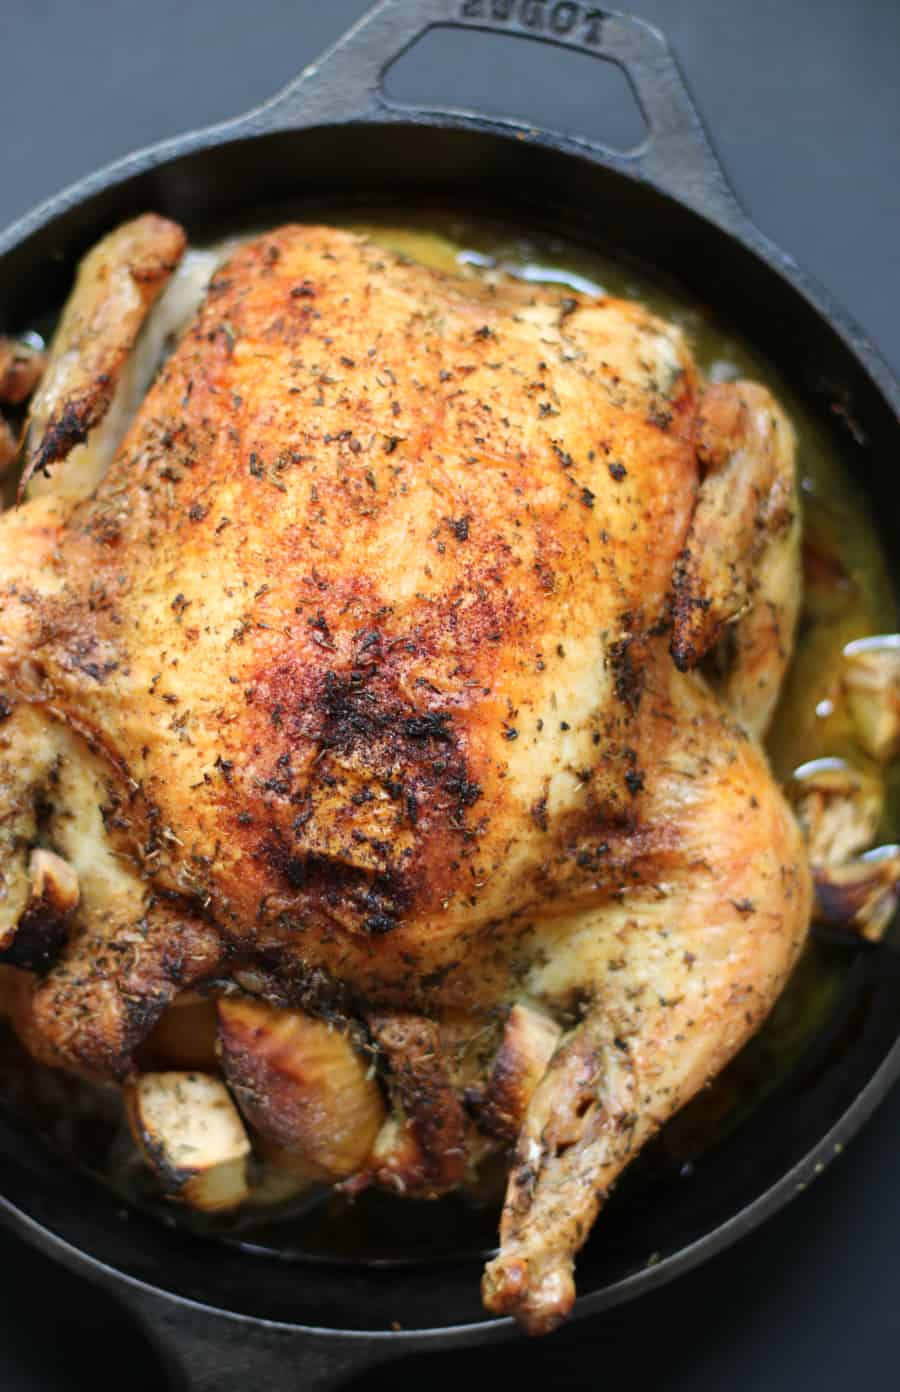 Easy Cast Iron Whole Roasted Chicken for Keto Thanksgiving #keto #ketorecipe #thanksgiving